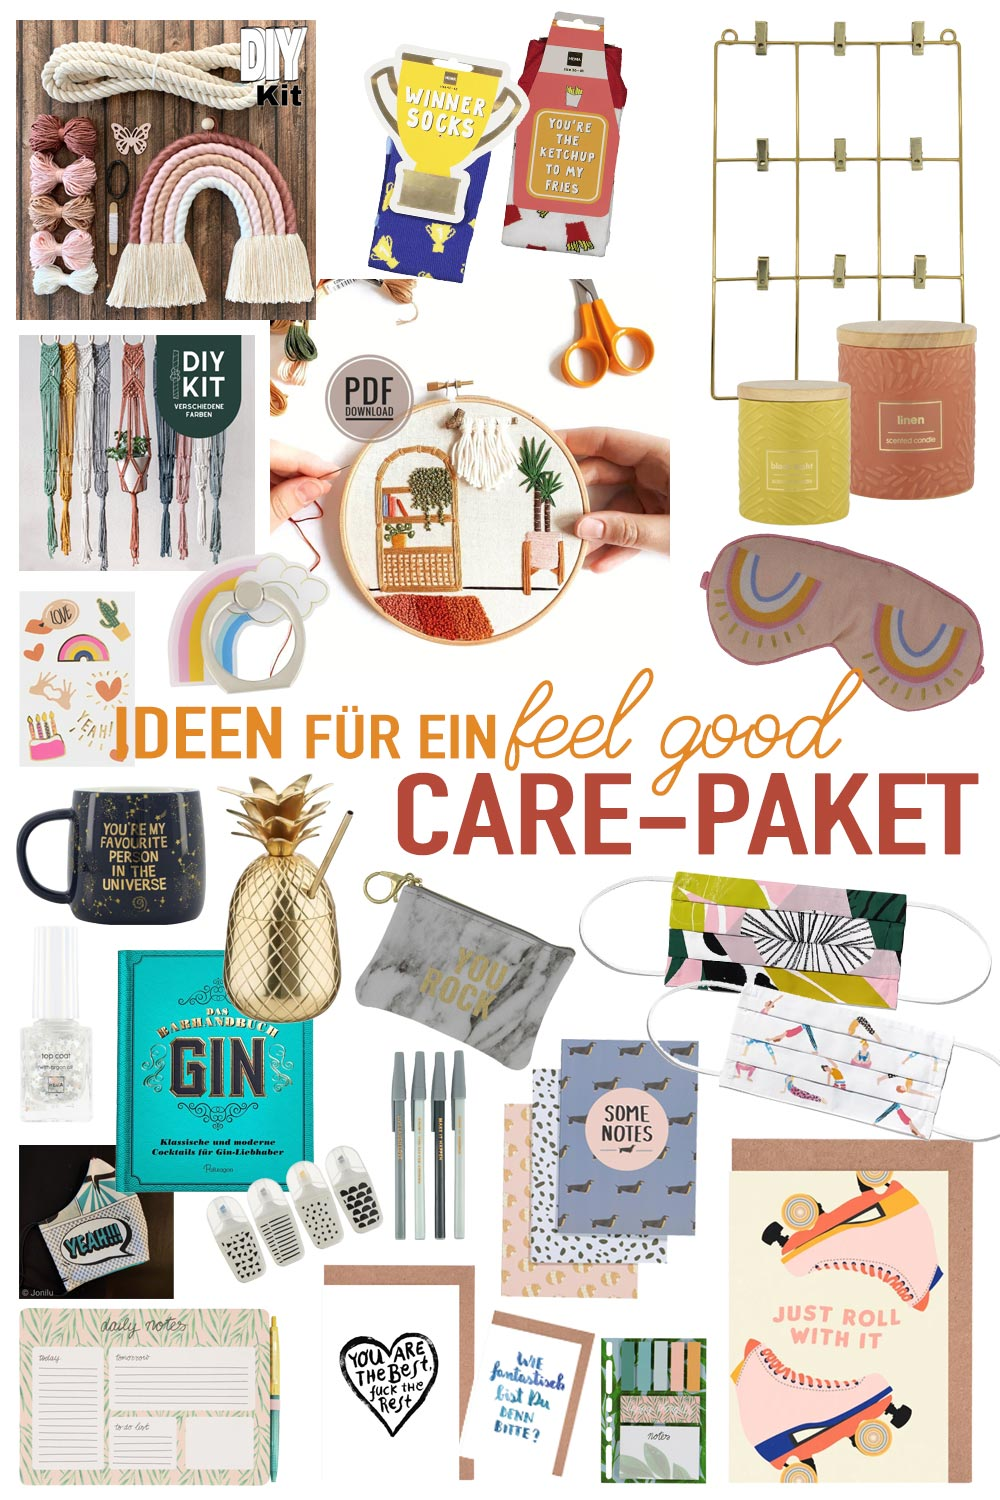 Ideen für ein feel good Care-Paket